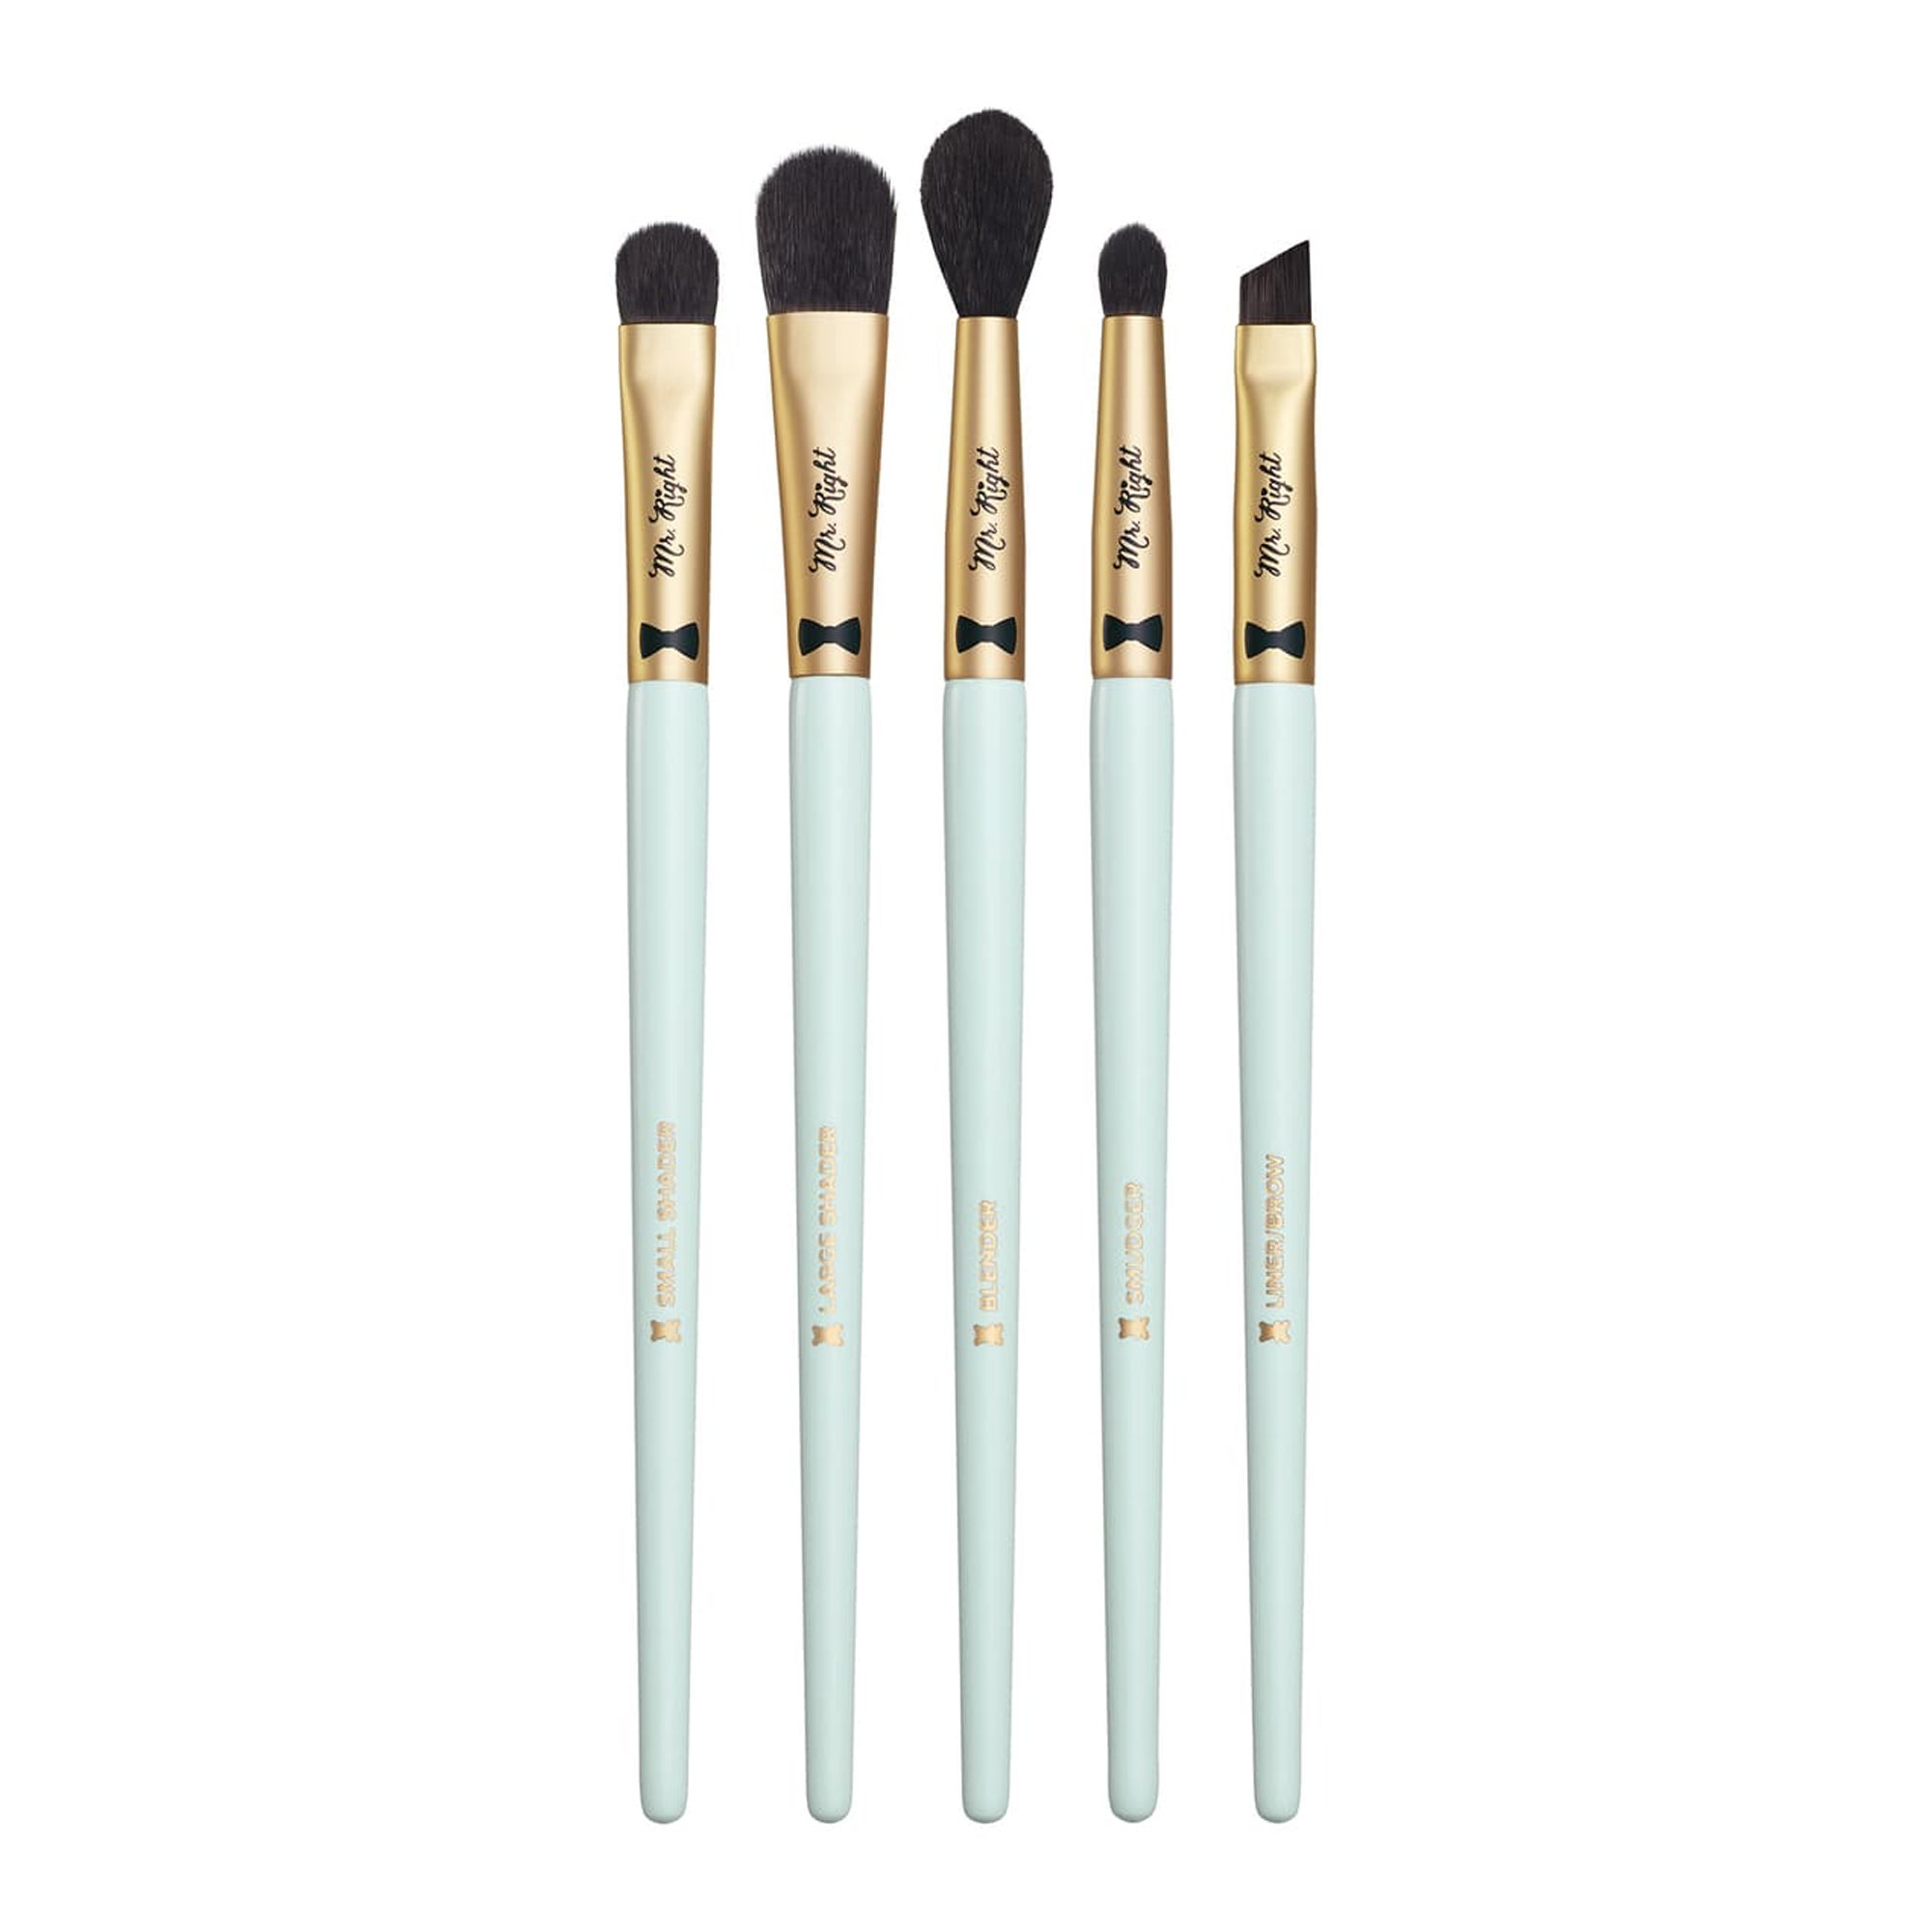 Too Faced Mr. Right Eye Essential Brush Set